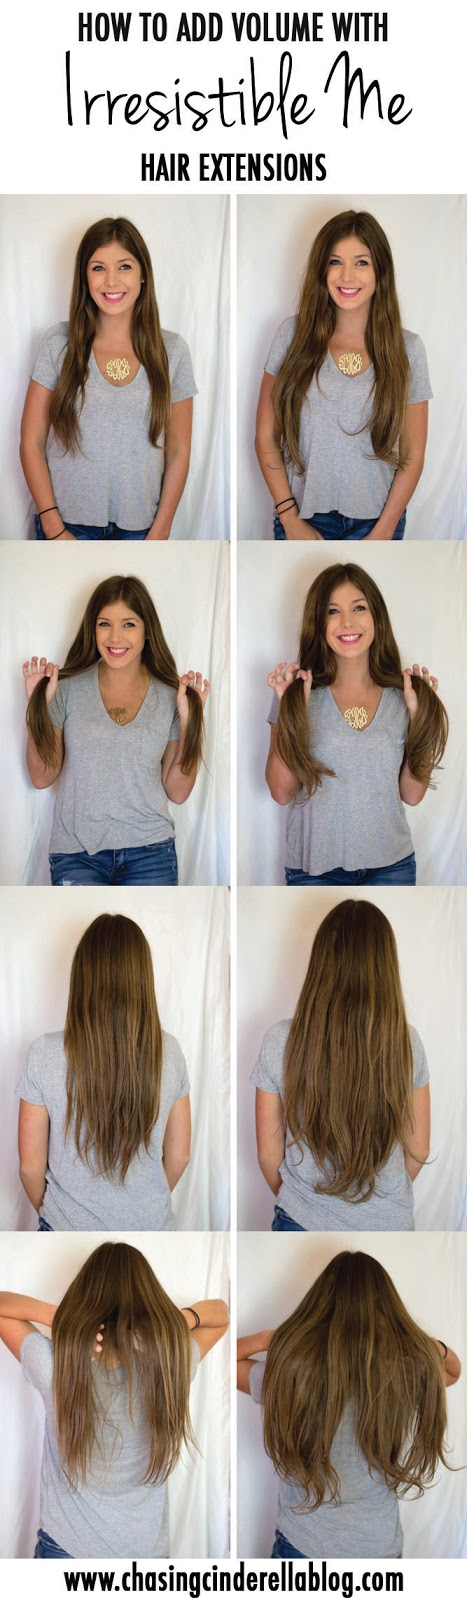 How to add volume with Irresistible Me Hair Extensions